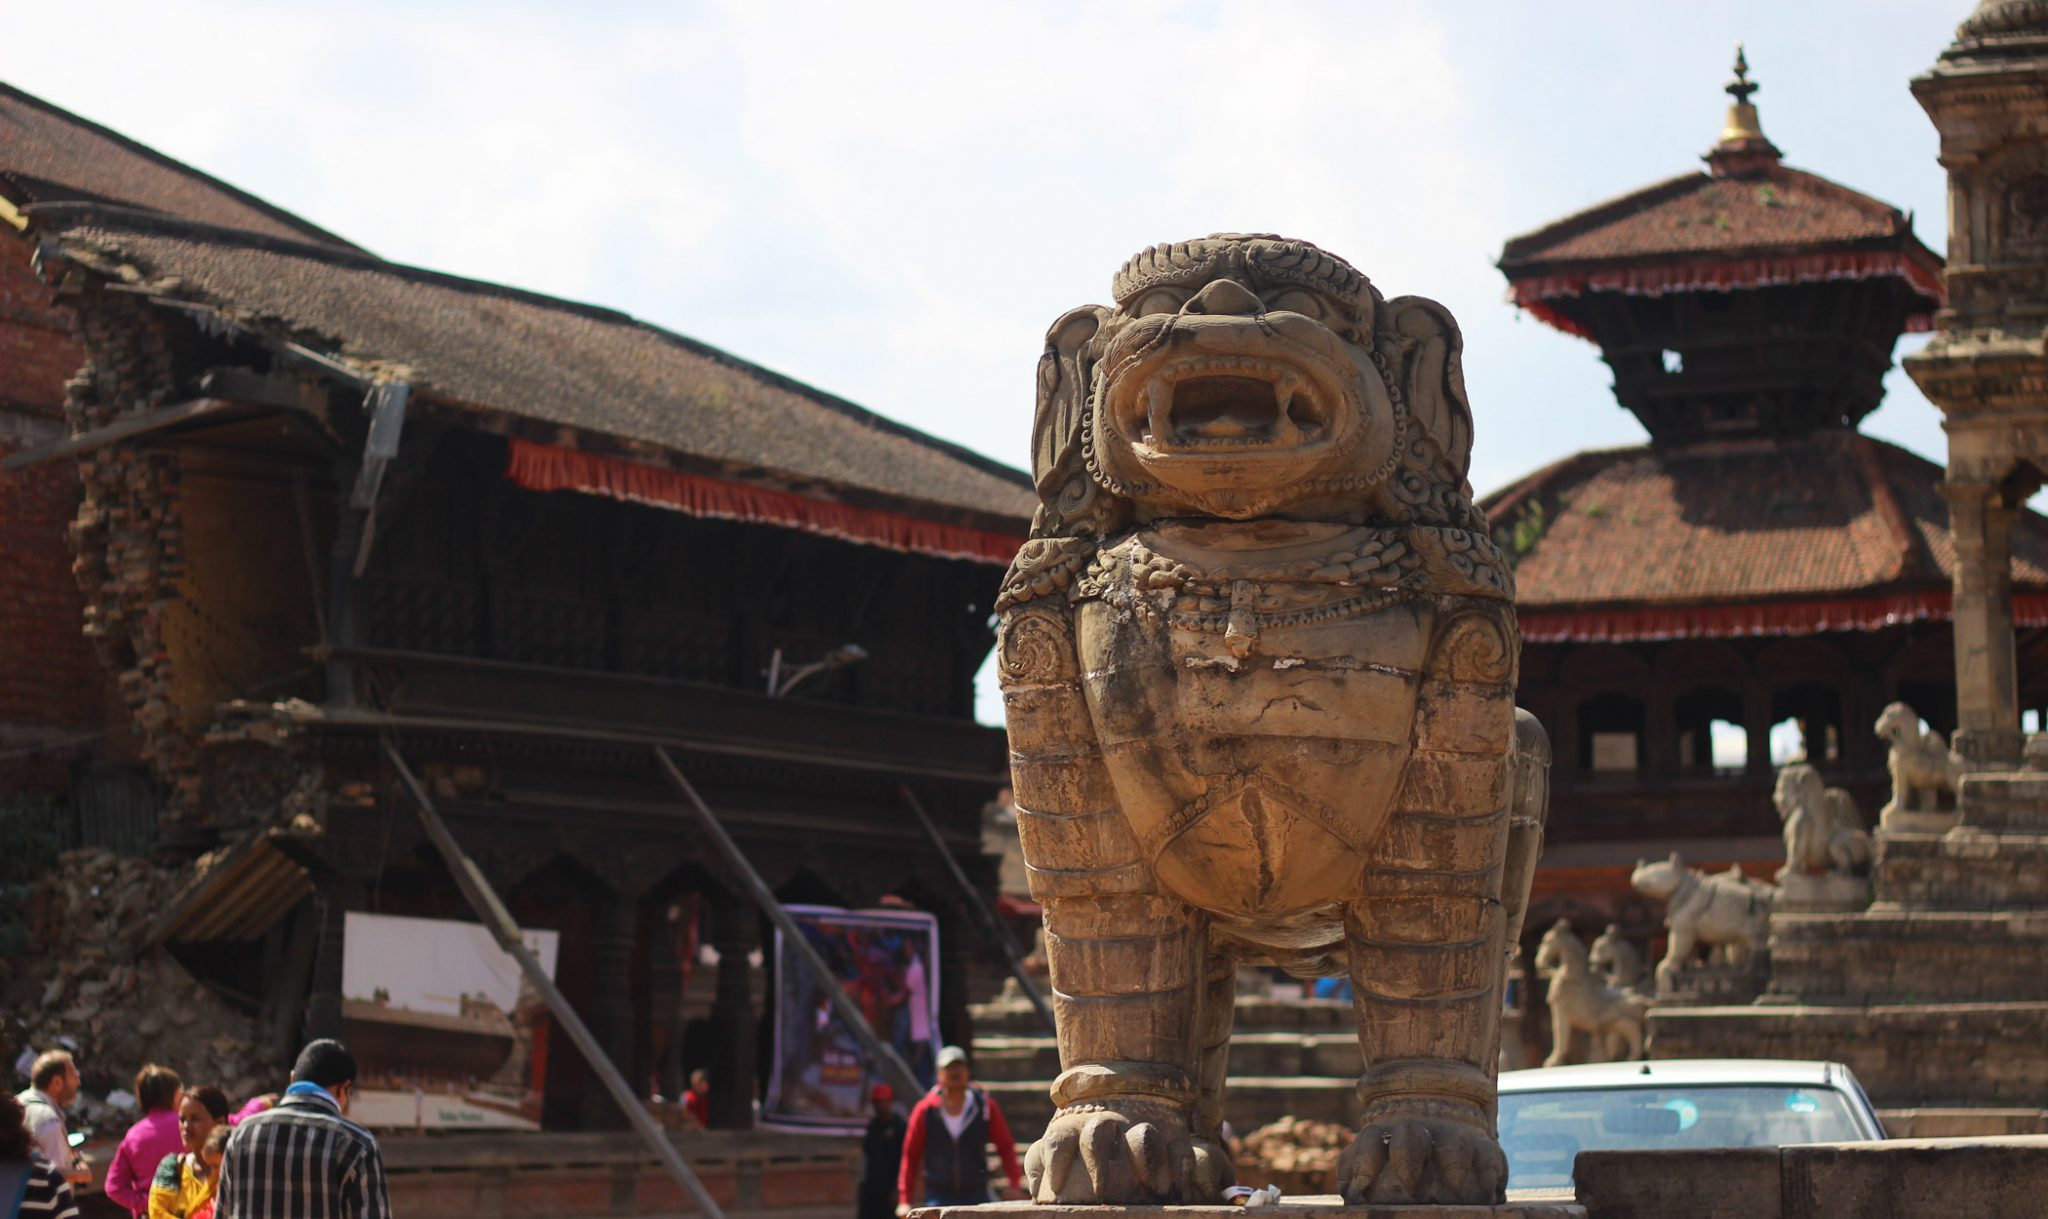 A set of two stone lions stand on their own in Bhaktapur's Durbar Square. It is thought that the temple they used to guard was destroyed by the 1934 earthquake, the worst in Nepal's history. Nearly a third of the city's temples and buildings were destroyed in that earthquake, which measured 8.0 in magnitude.